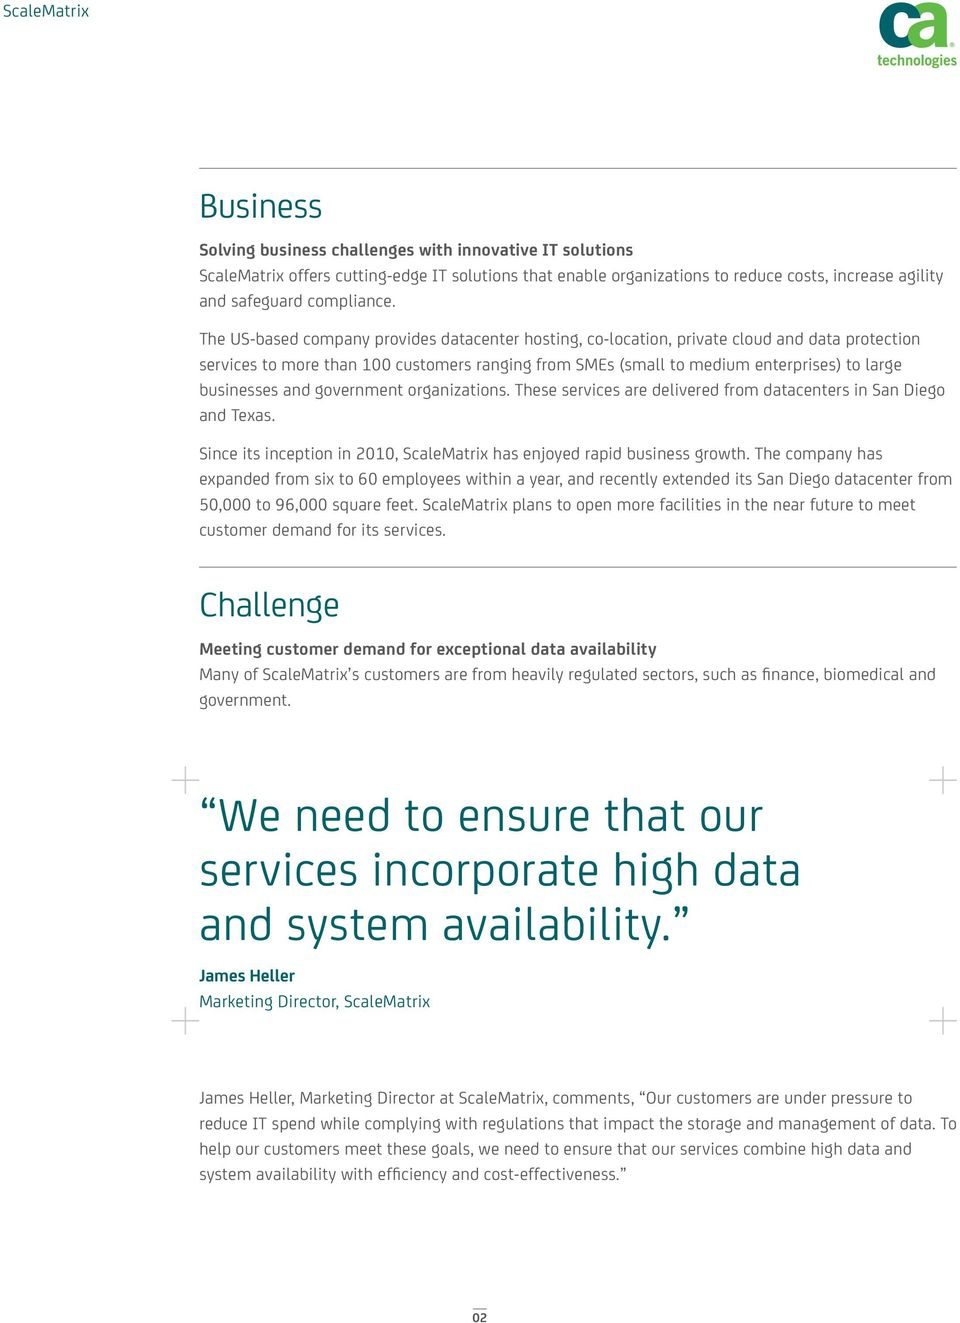 businesses and government organizations. These services are delivered from datacenters in San Diego and Texas. Since its inception in 2010, ScaleMatrix has enjoyed rapid business growth.